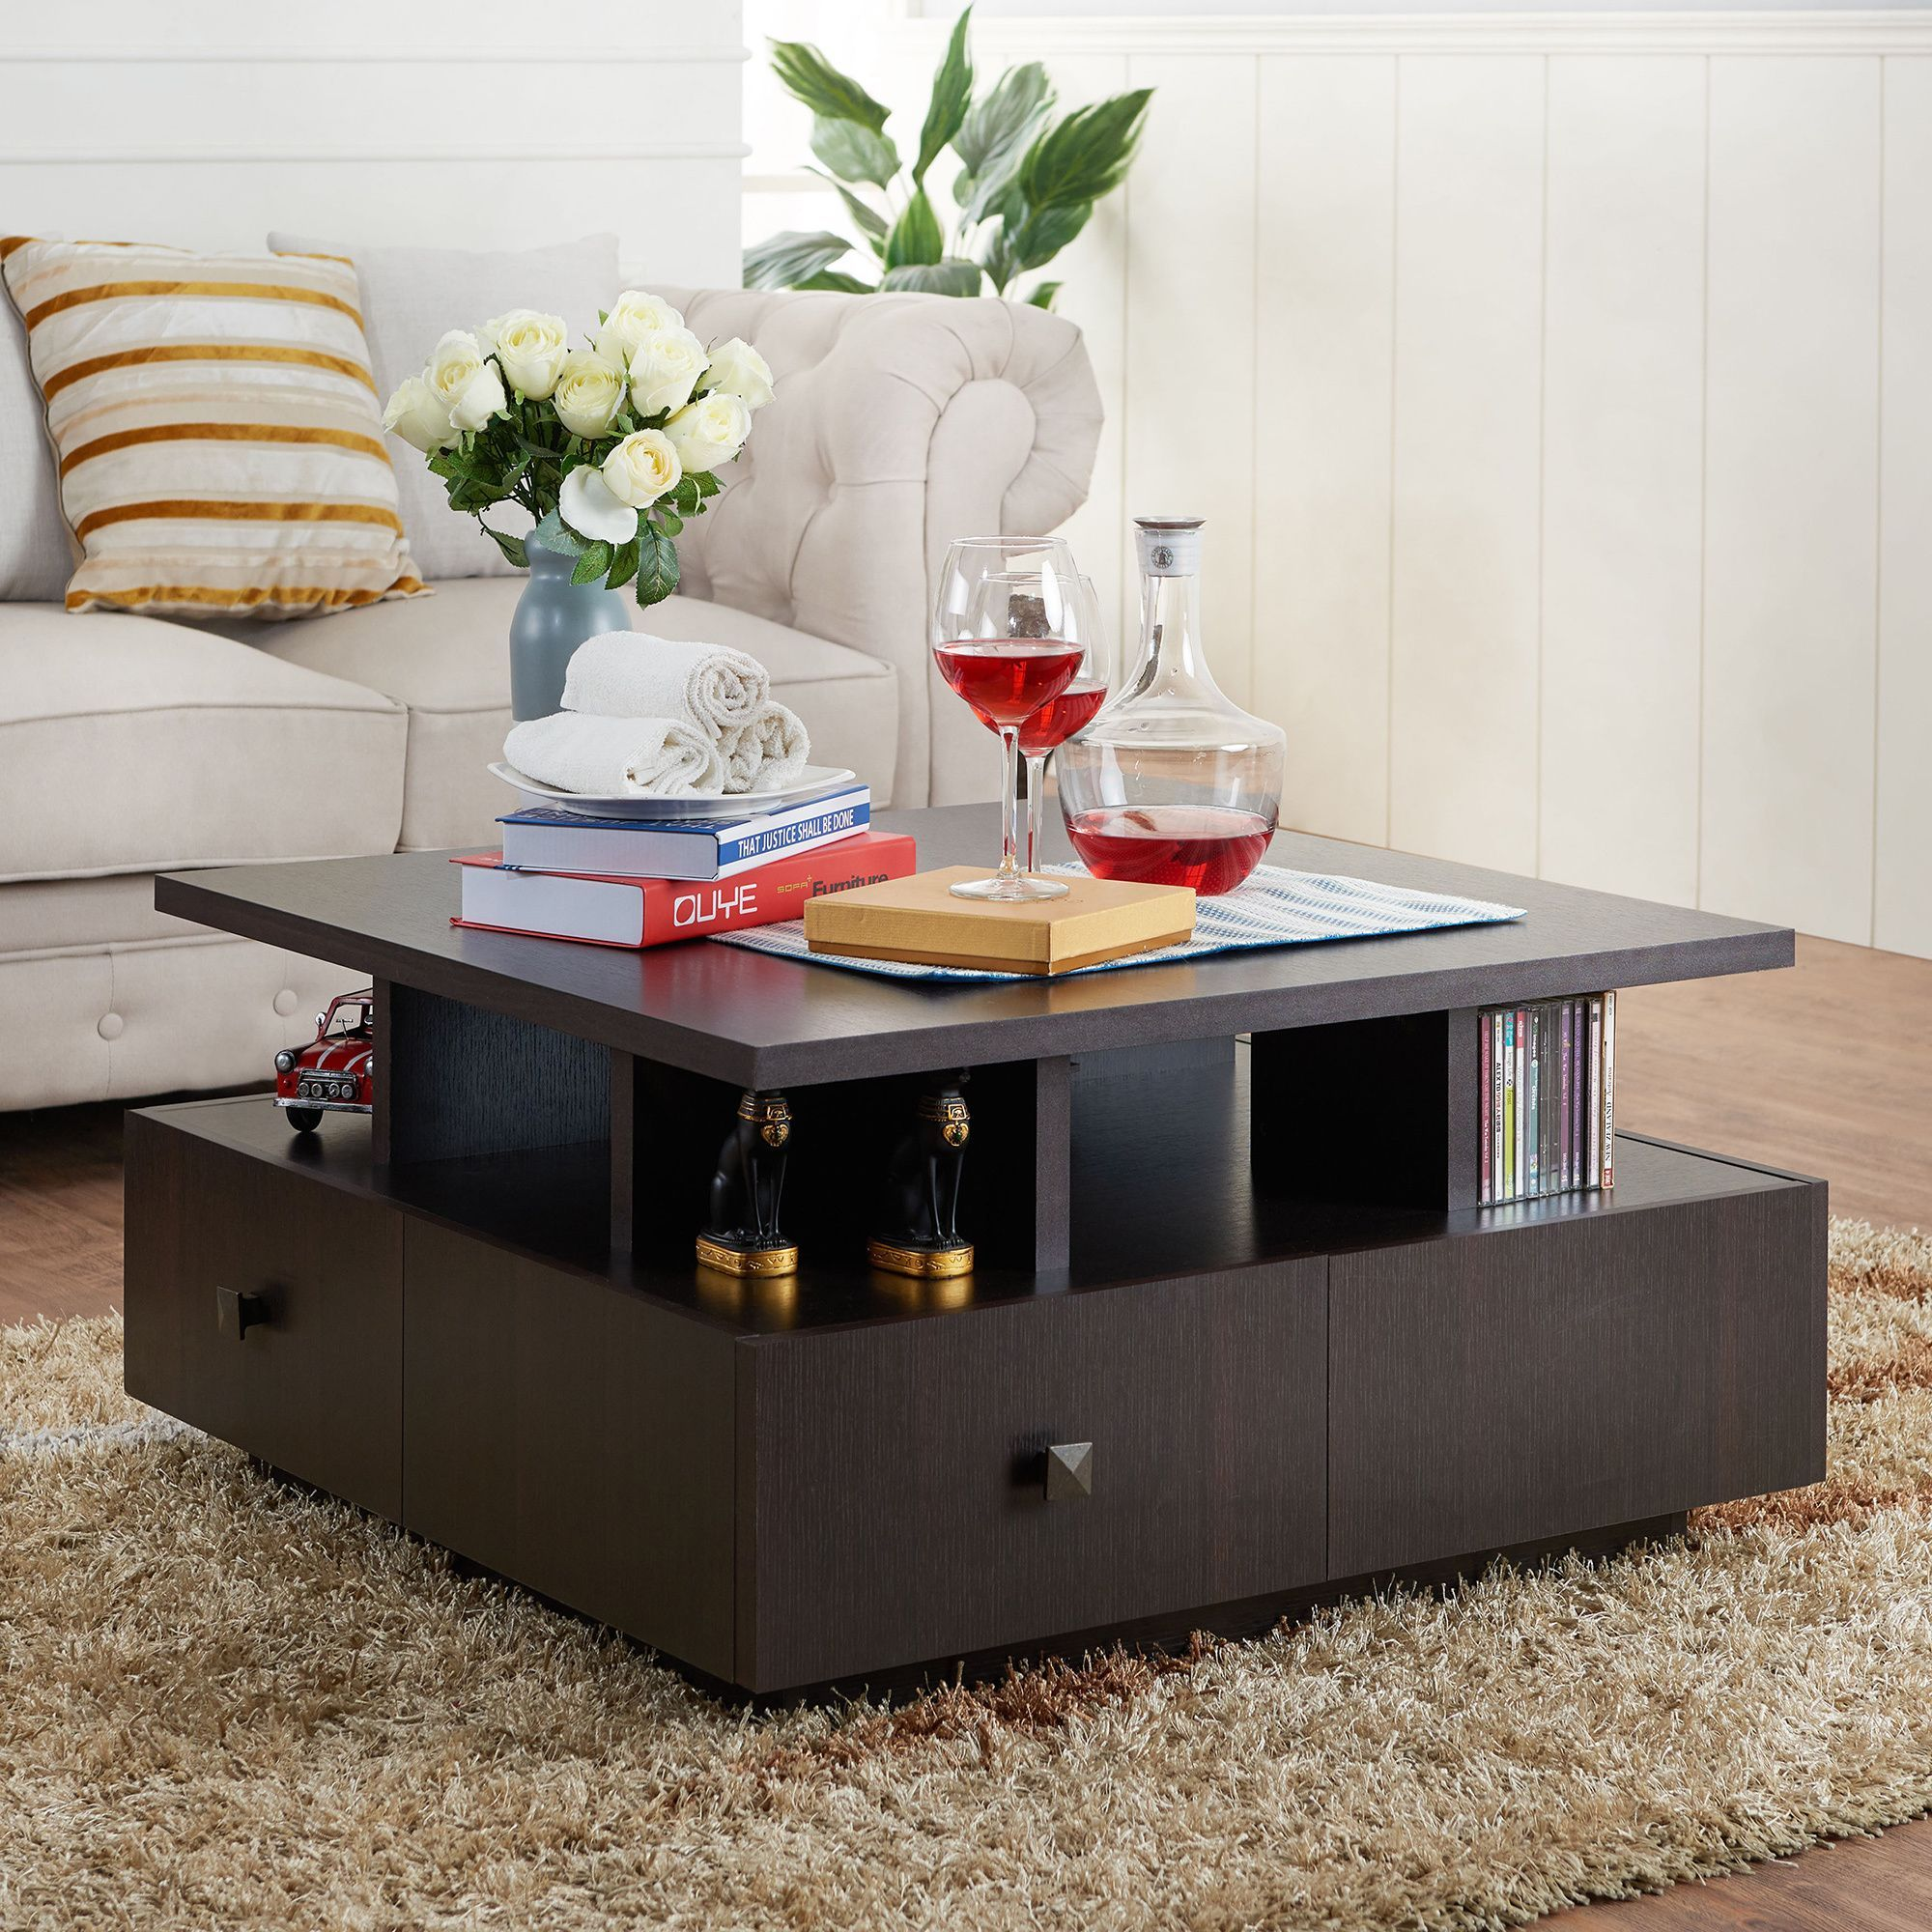 Furniture of america terrenal tiered espresso 4 drawer coffee furniture of america terrenal tiered espresso 4 drawer coffee table by furniture of america geotapseo Image collections